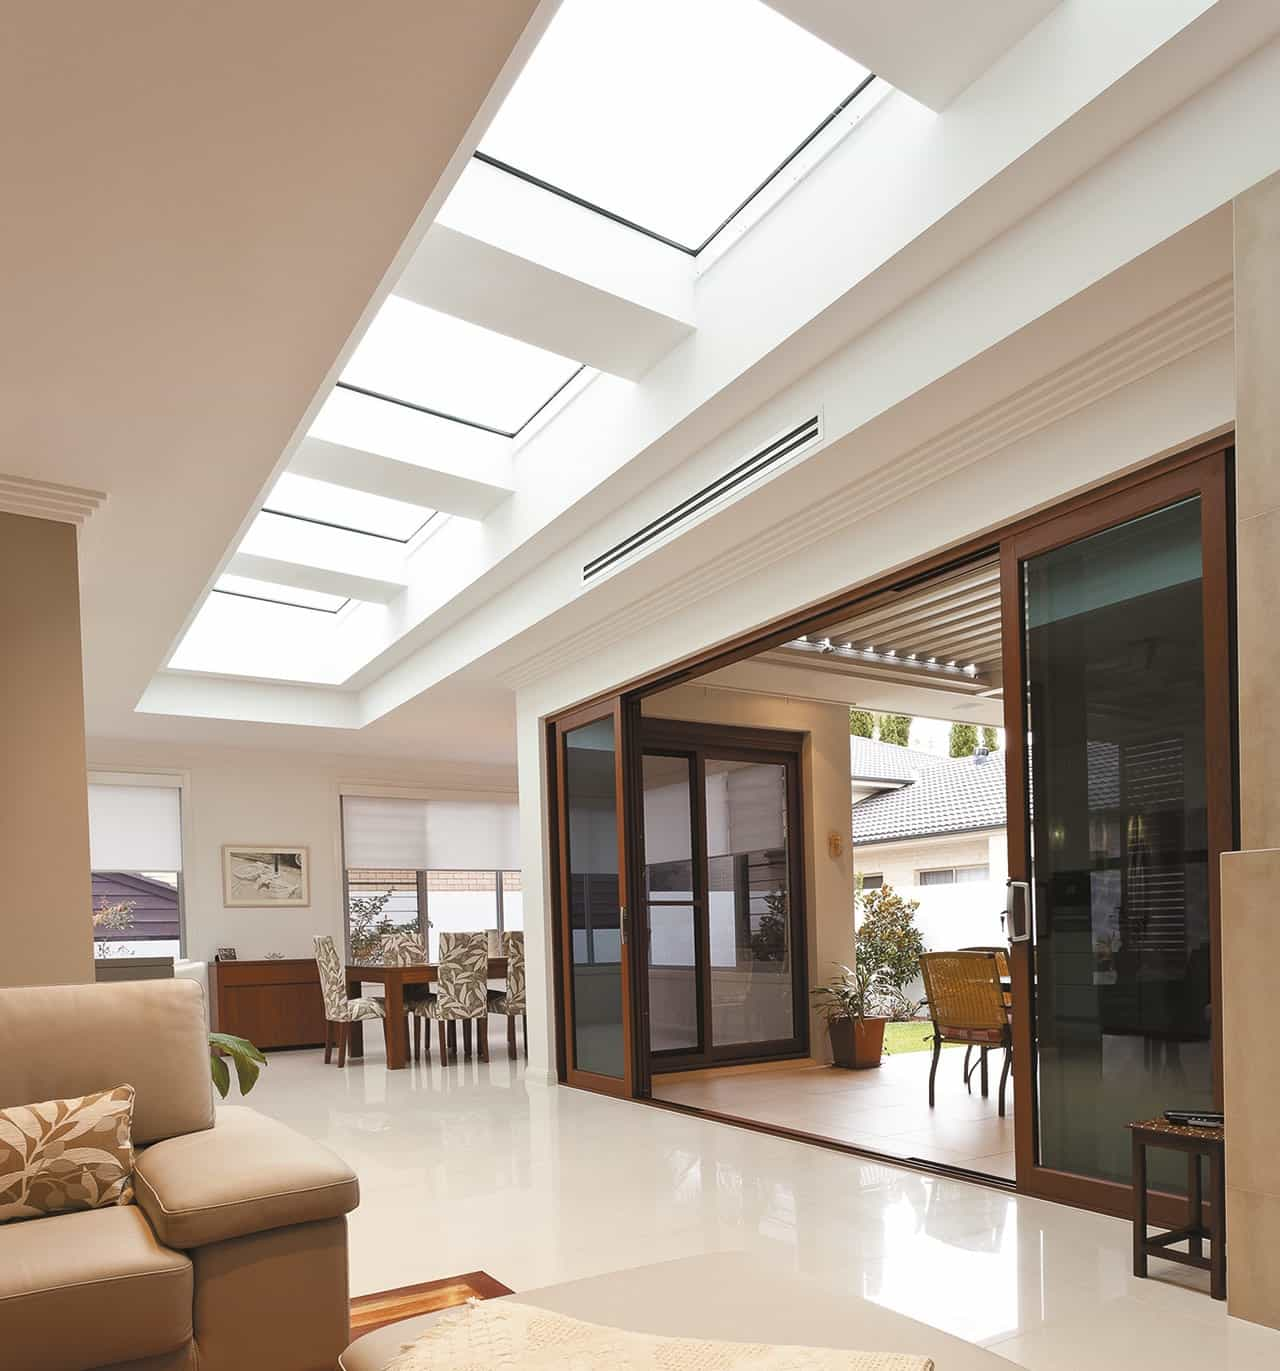 Horizontal Skylights For Modern Living Room (Image 8 of 25)